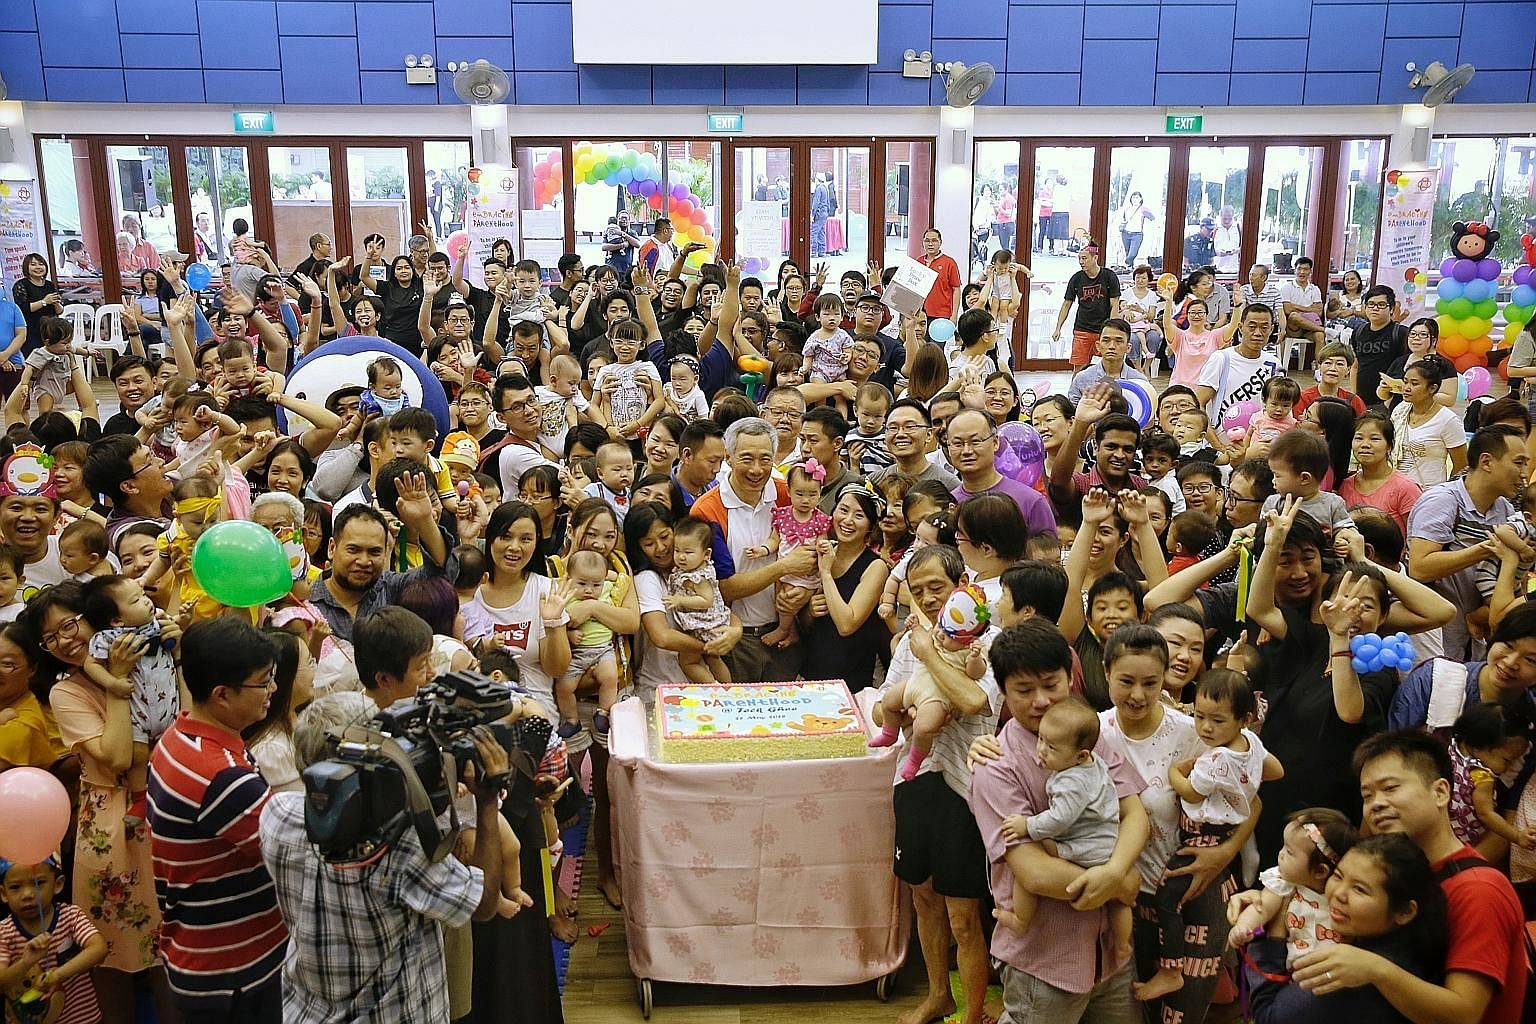 Prime Minister Lee Hsien Loong, who was guest of honour, taking a group photo with the families who turned up for the event at Cheng San Community Club yesterday.